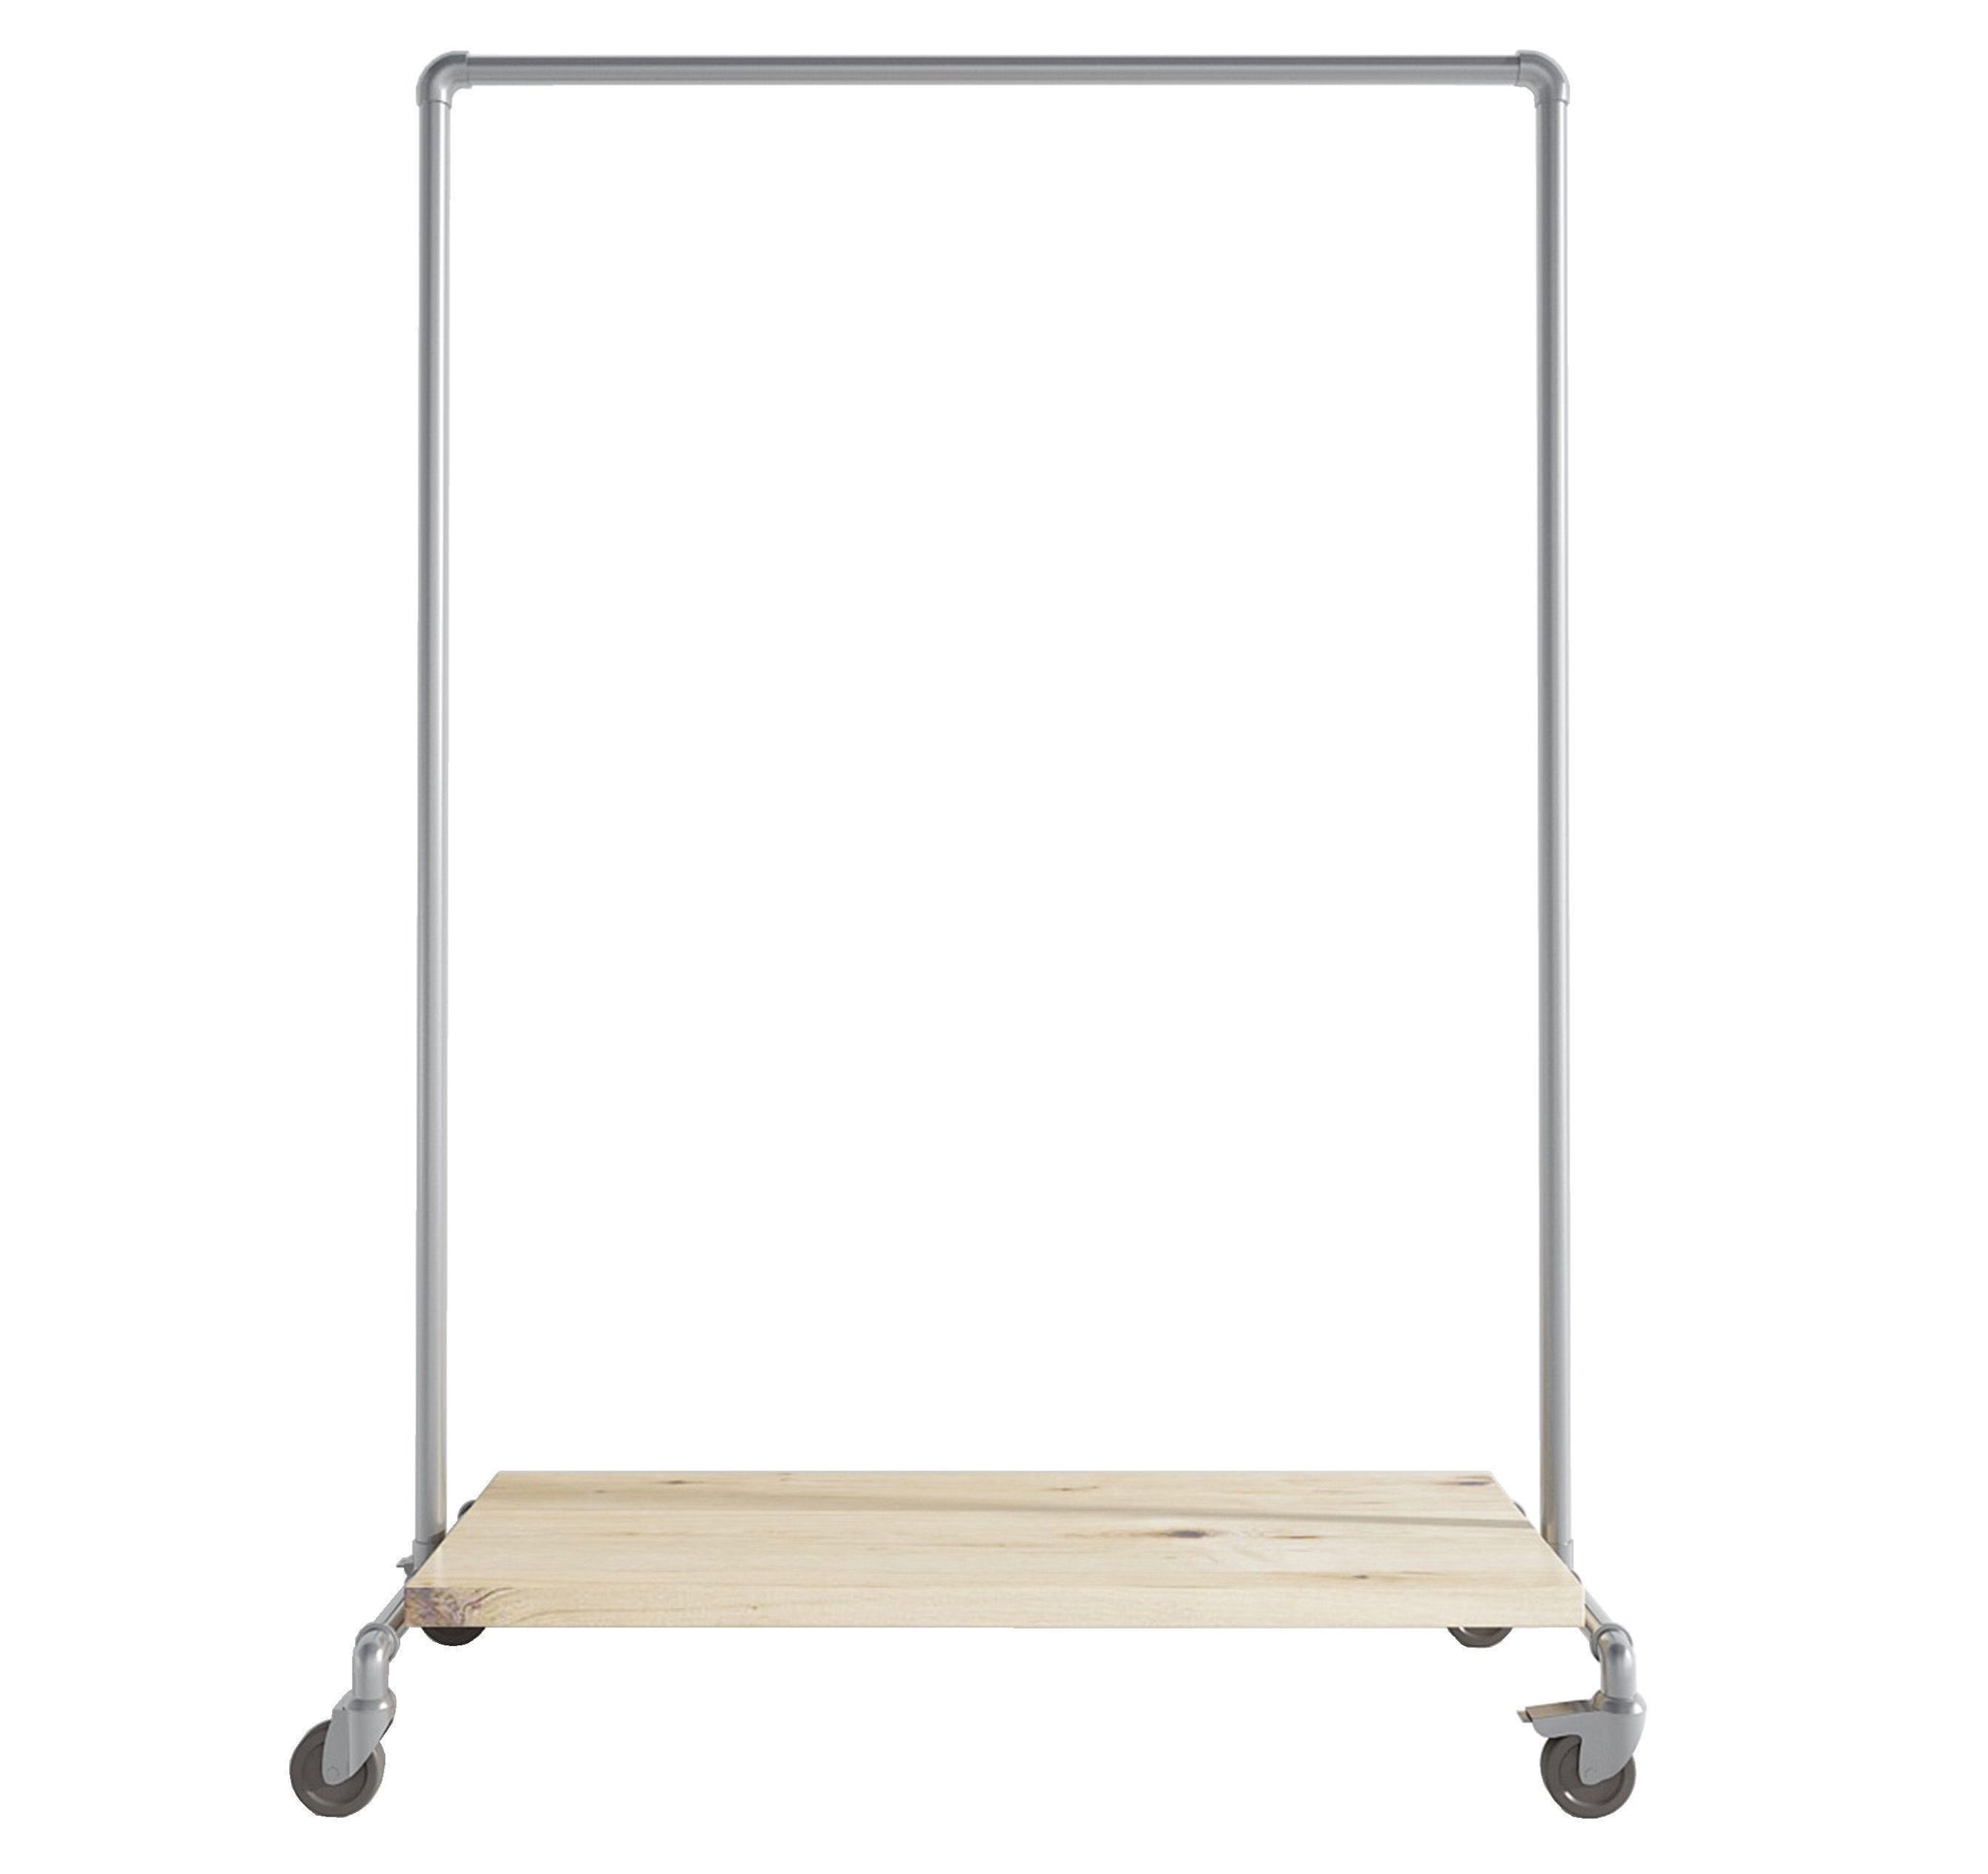 Ziito Clothes Rail C1 / 100 cm / Med Hjul Wood Low Shelf Tøjstativ